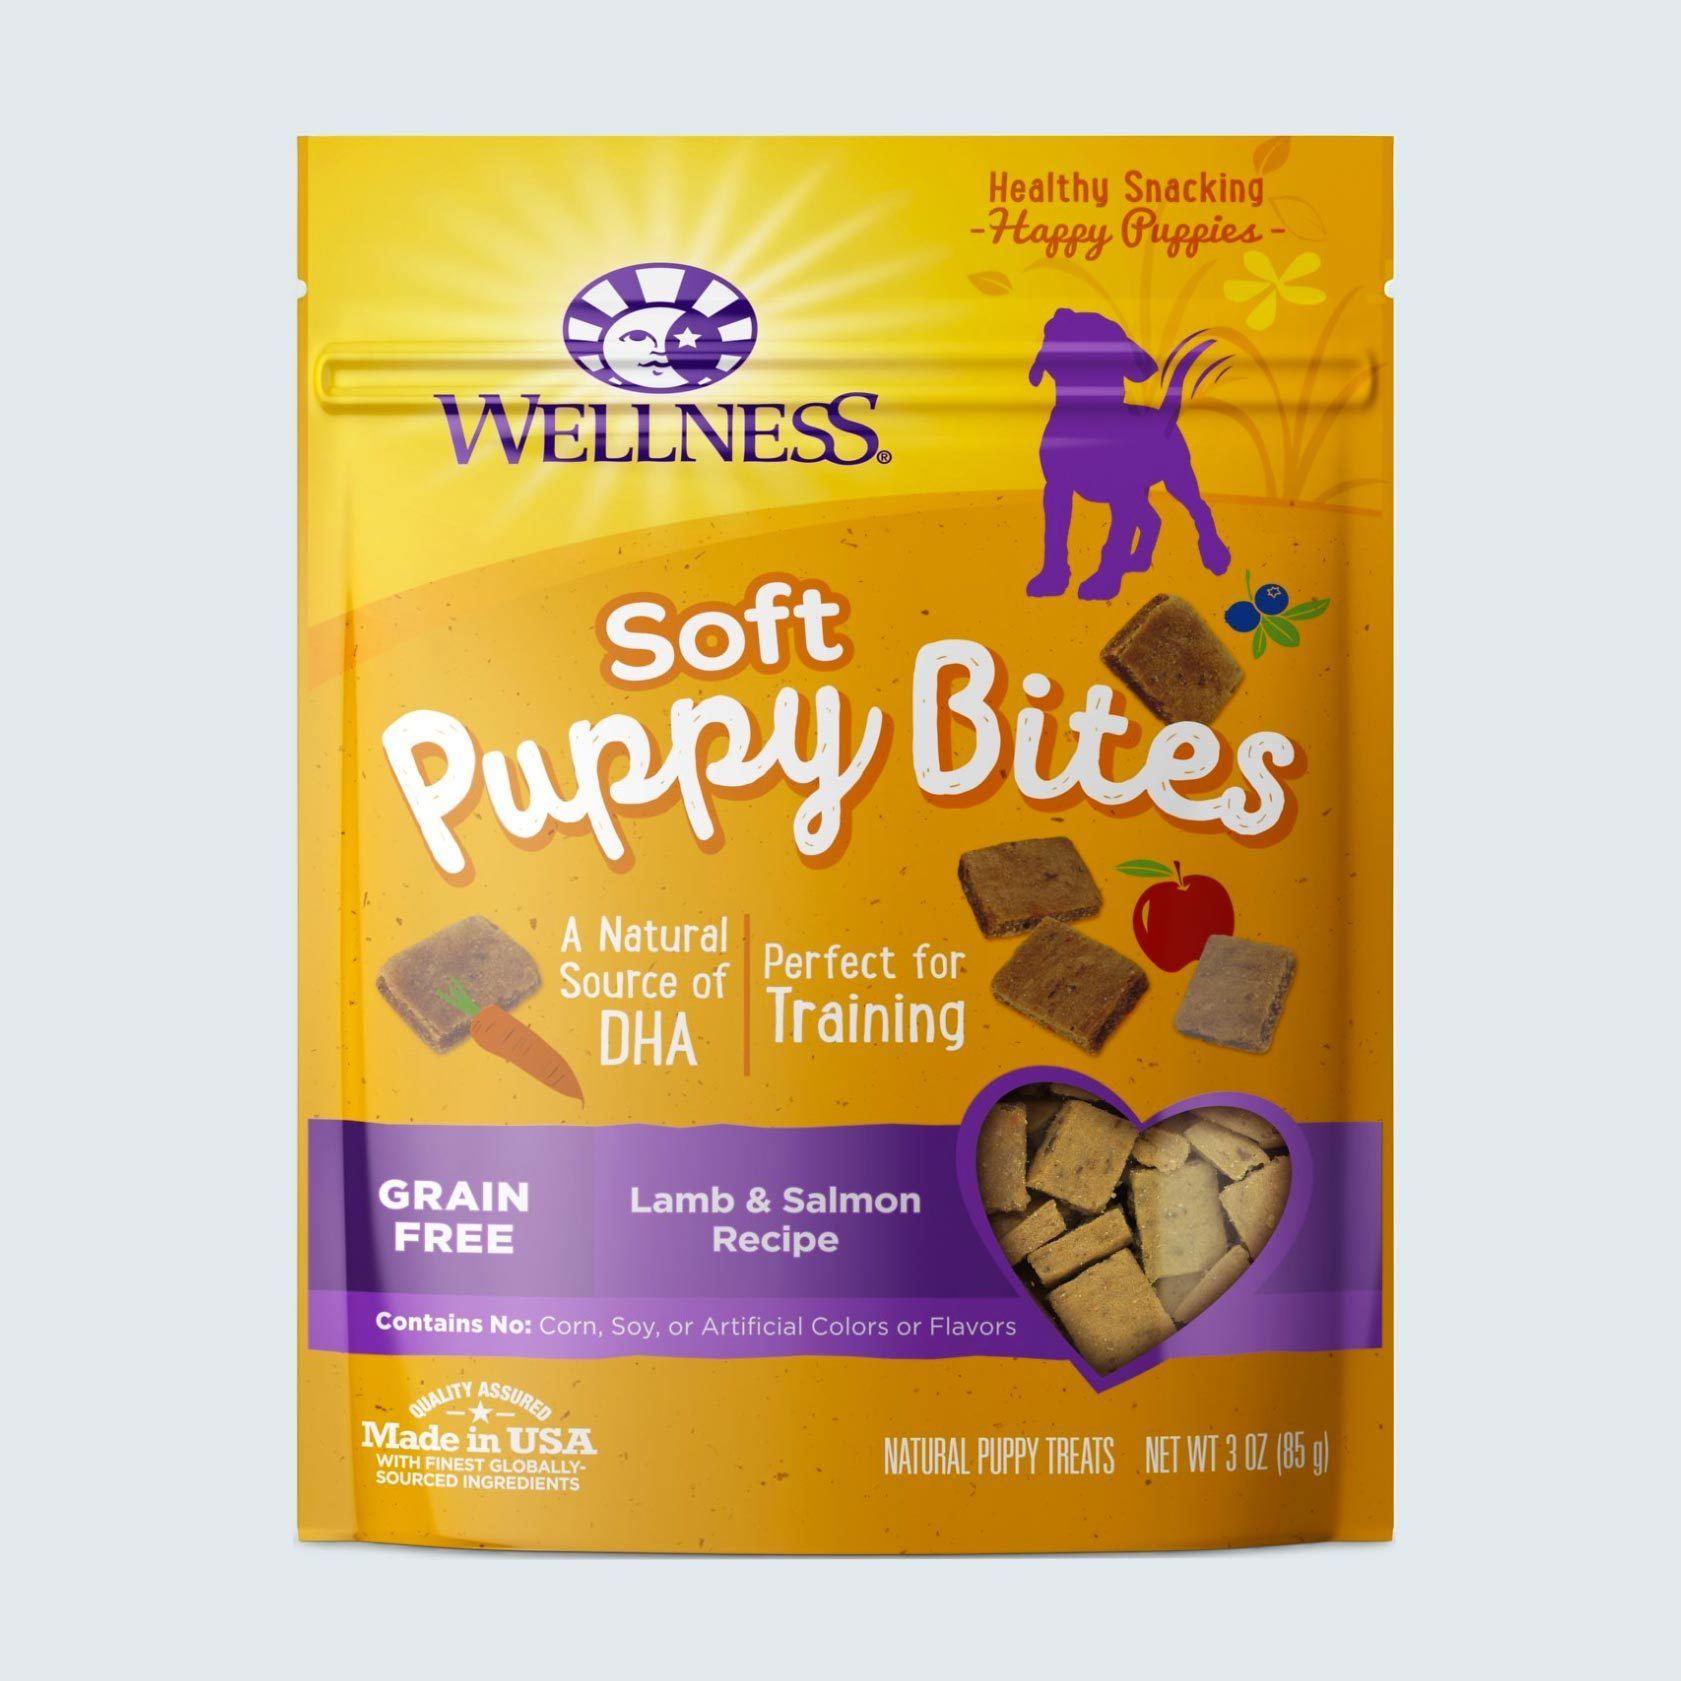 Wellness Soft Puppy Bites Grain-Free Lamb & Salmon Recipe Dog Treats